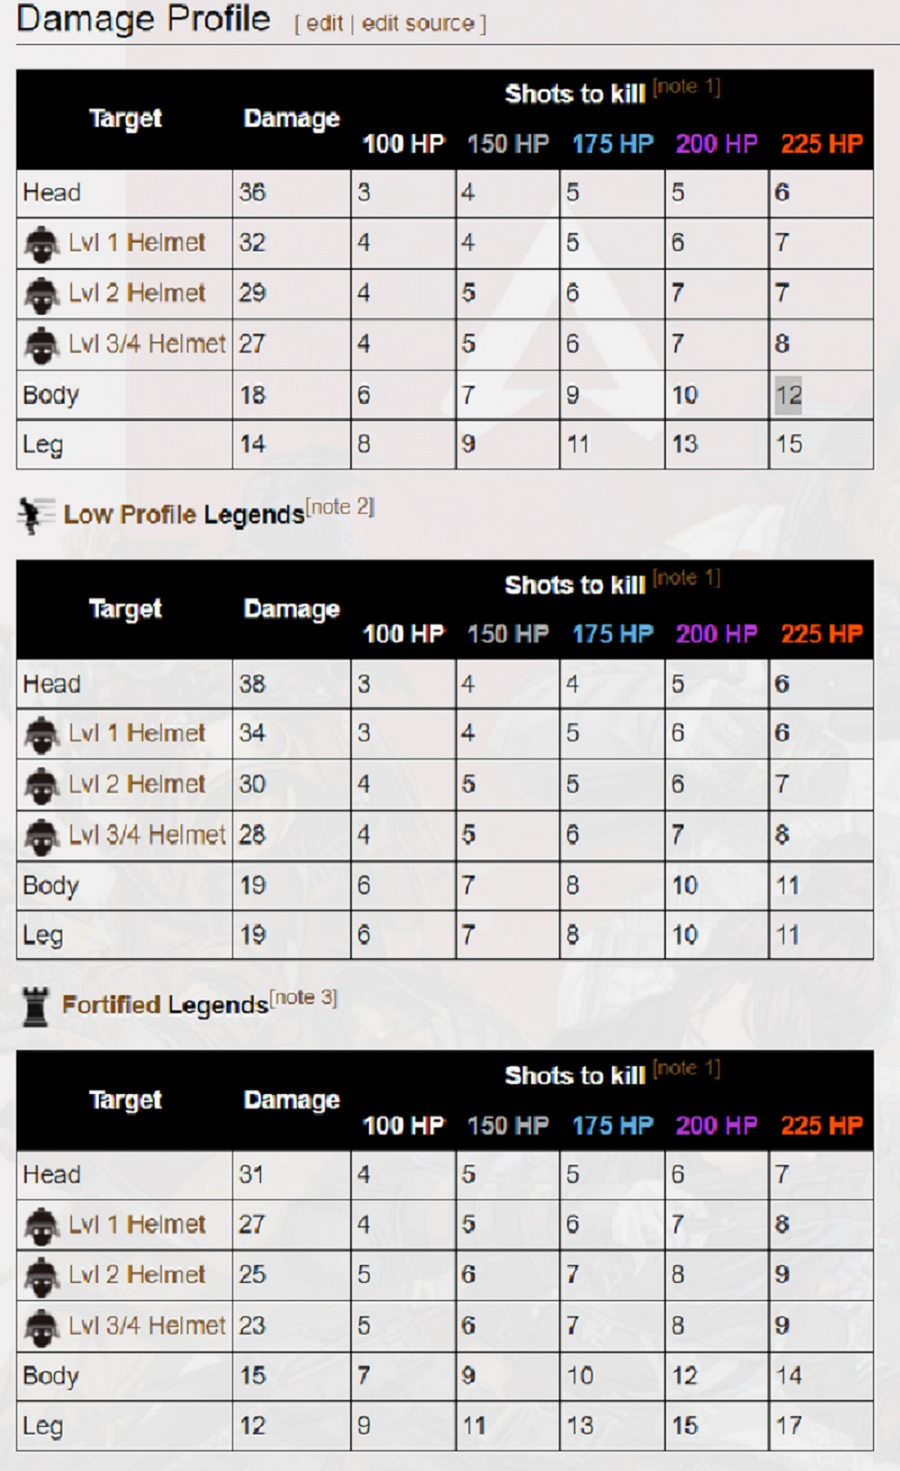 L-STAR damage numbers